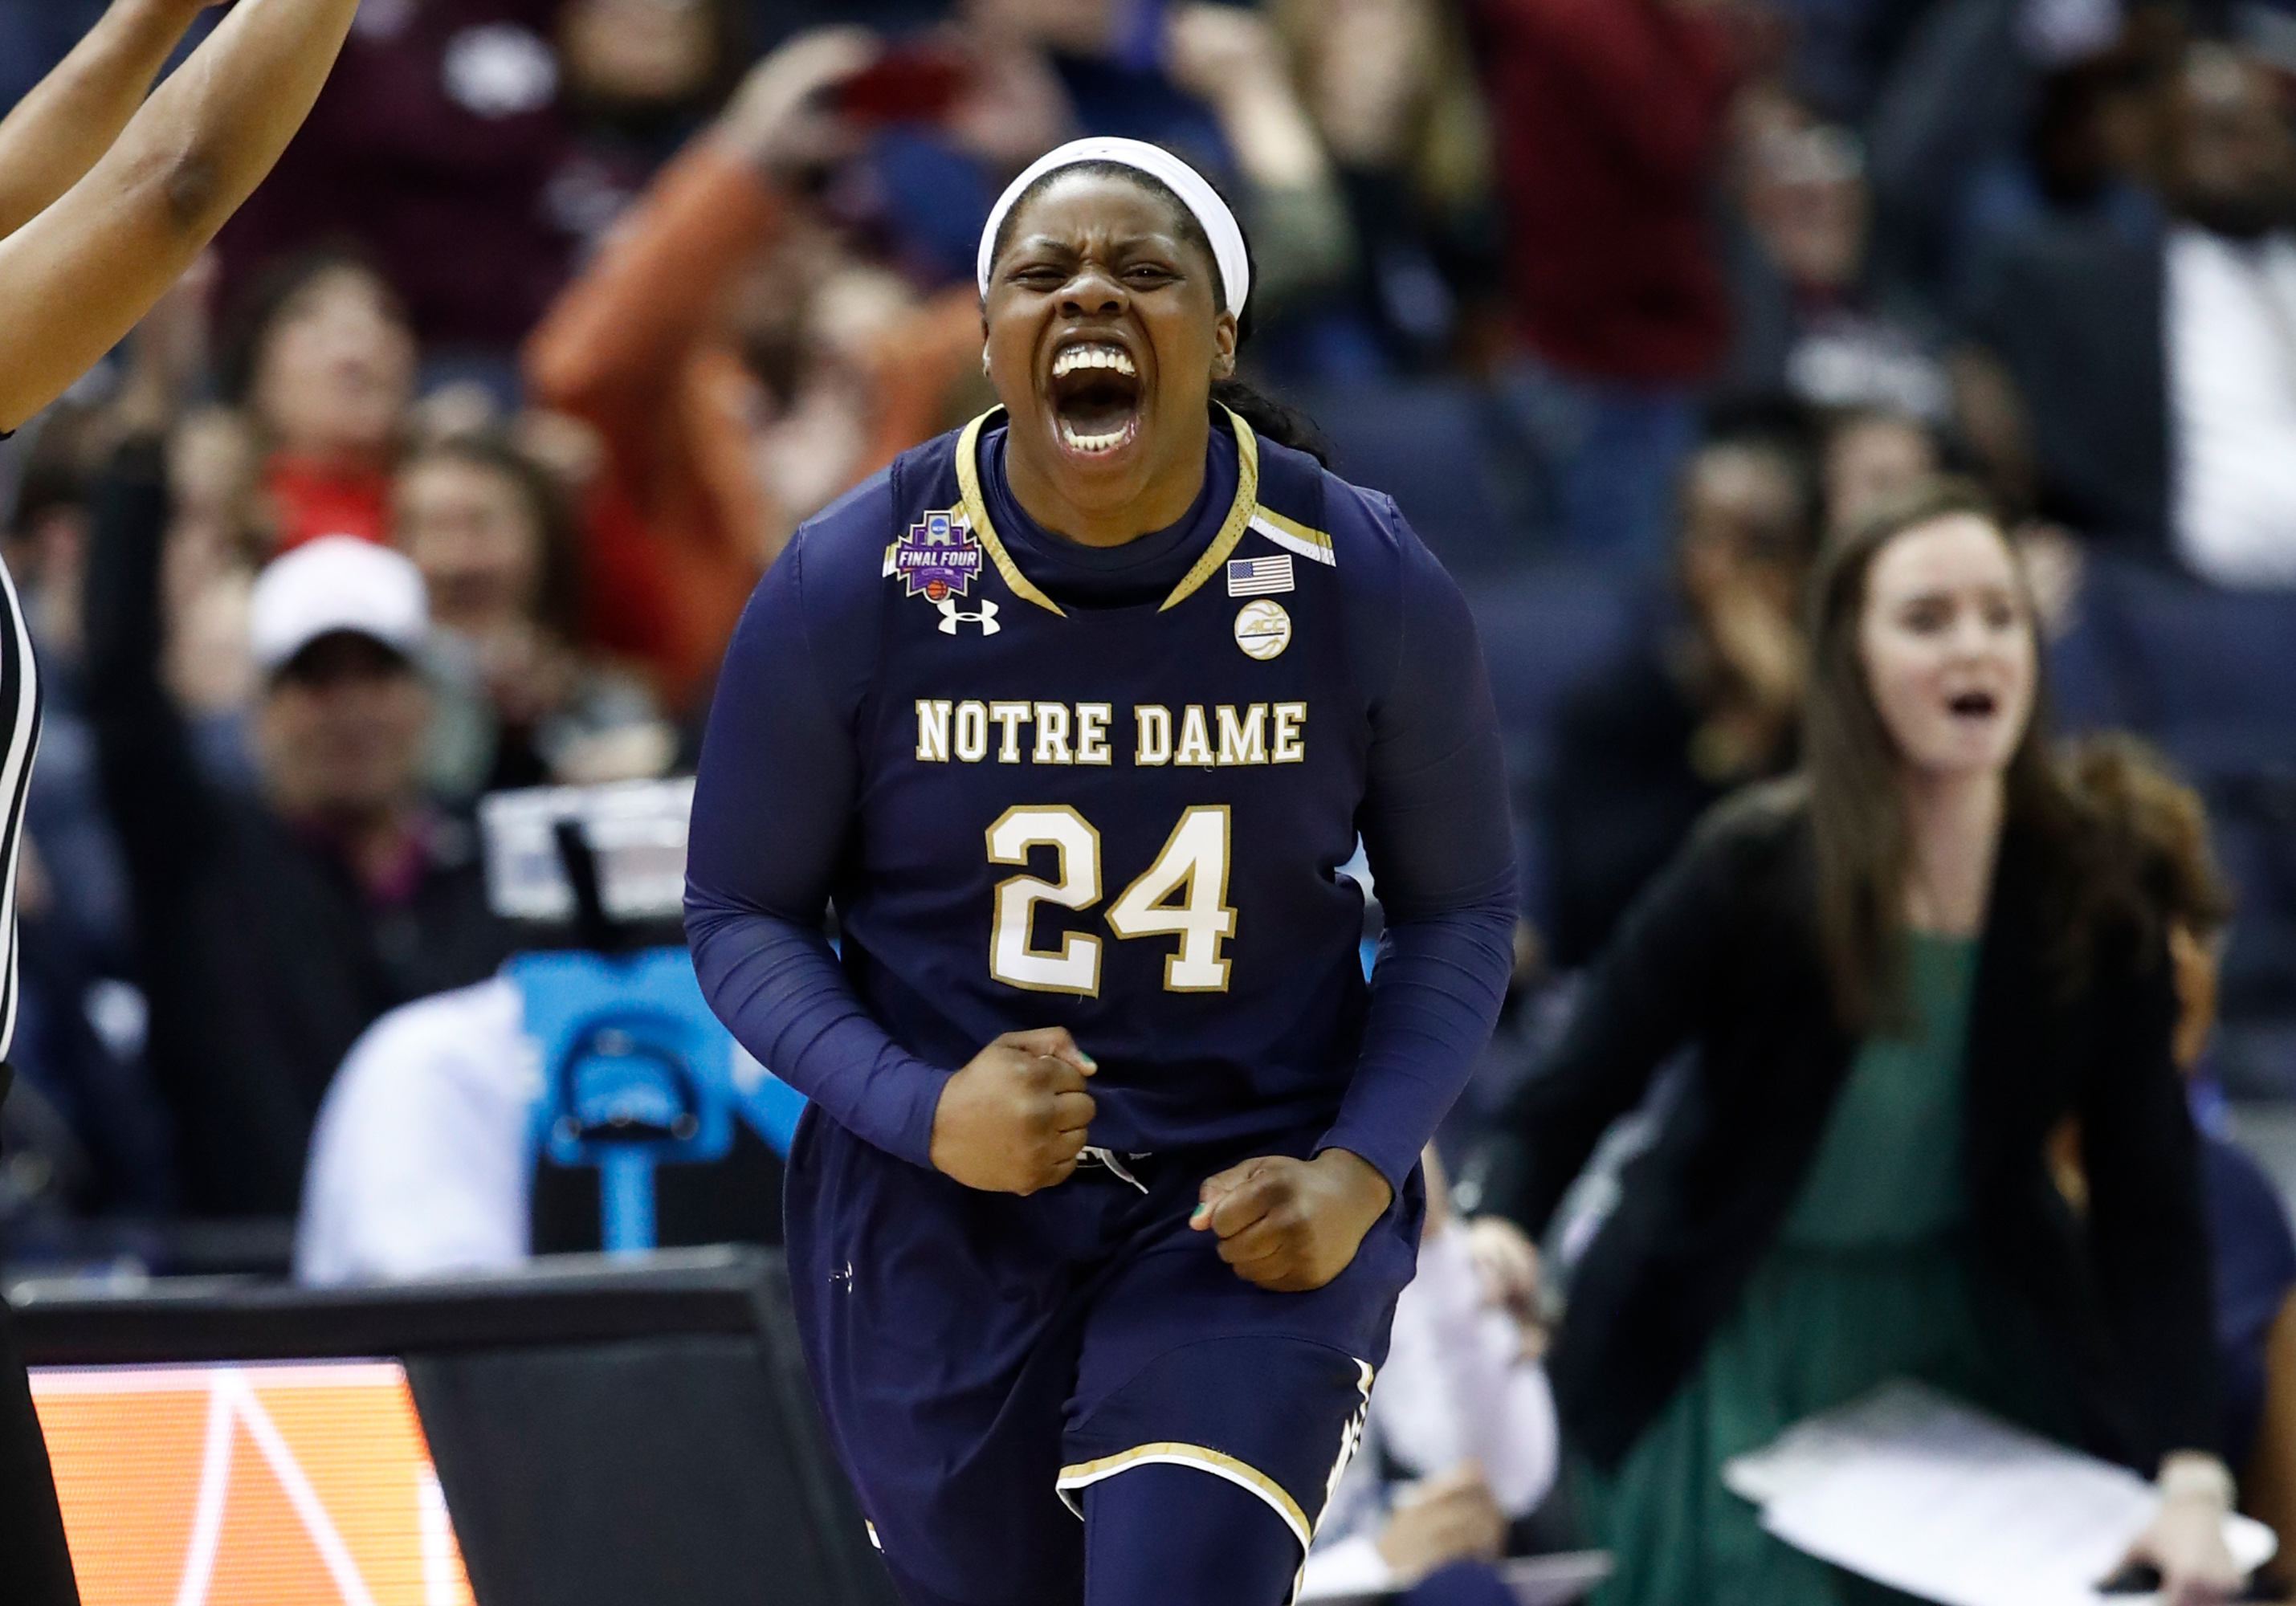 Notre Dame's Final Four win over UConn was shocking. Here's how it happened